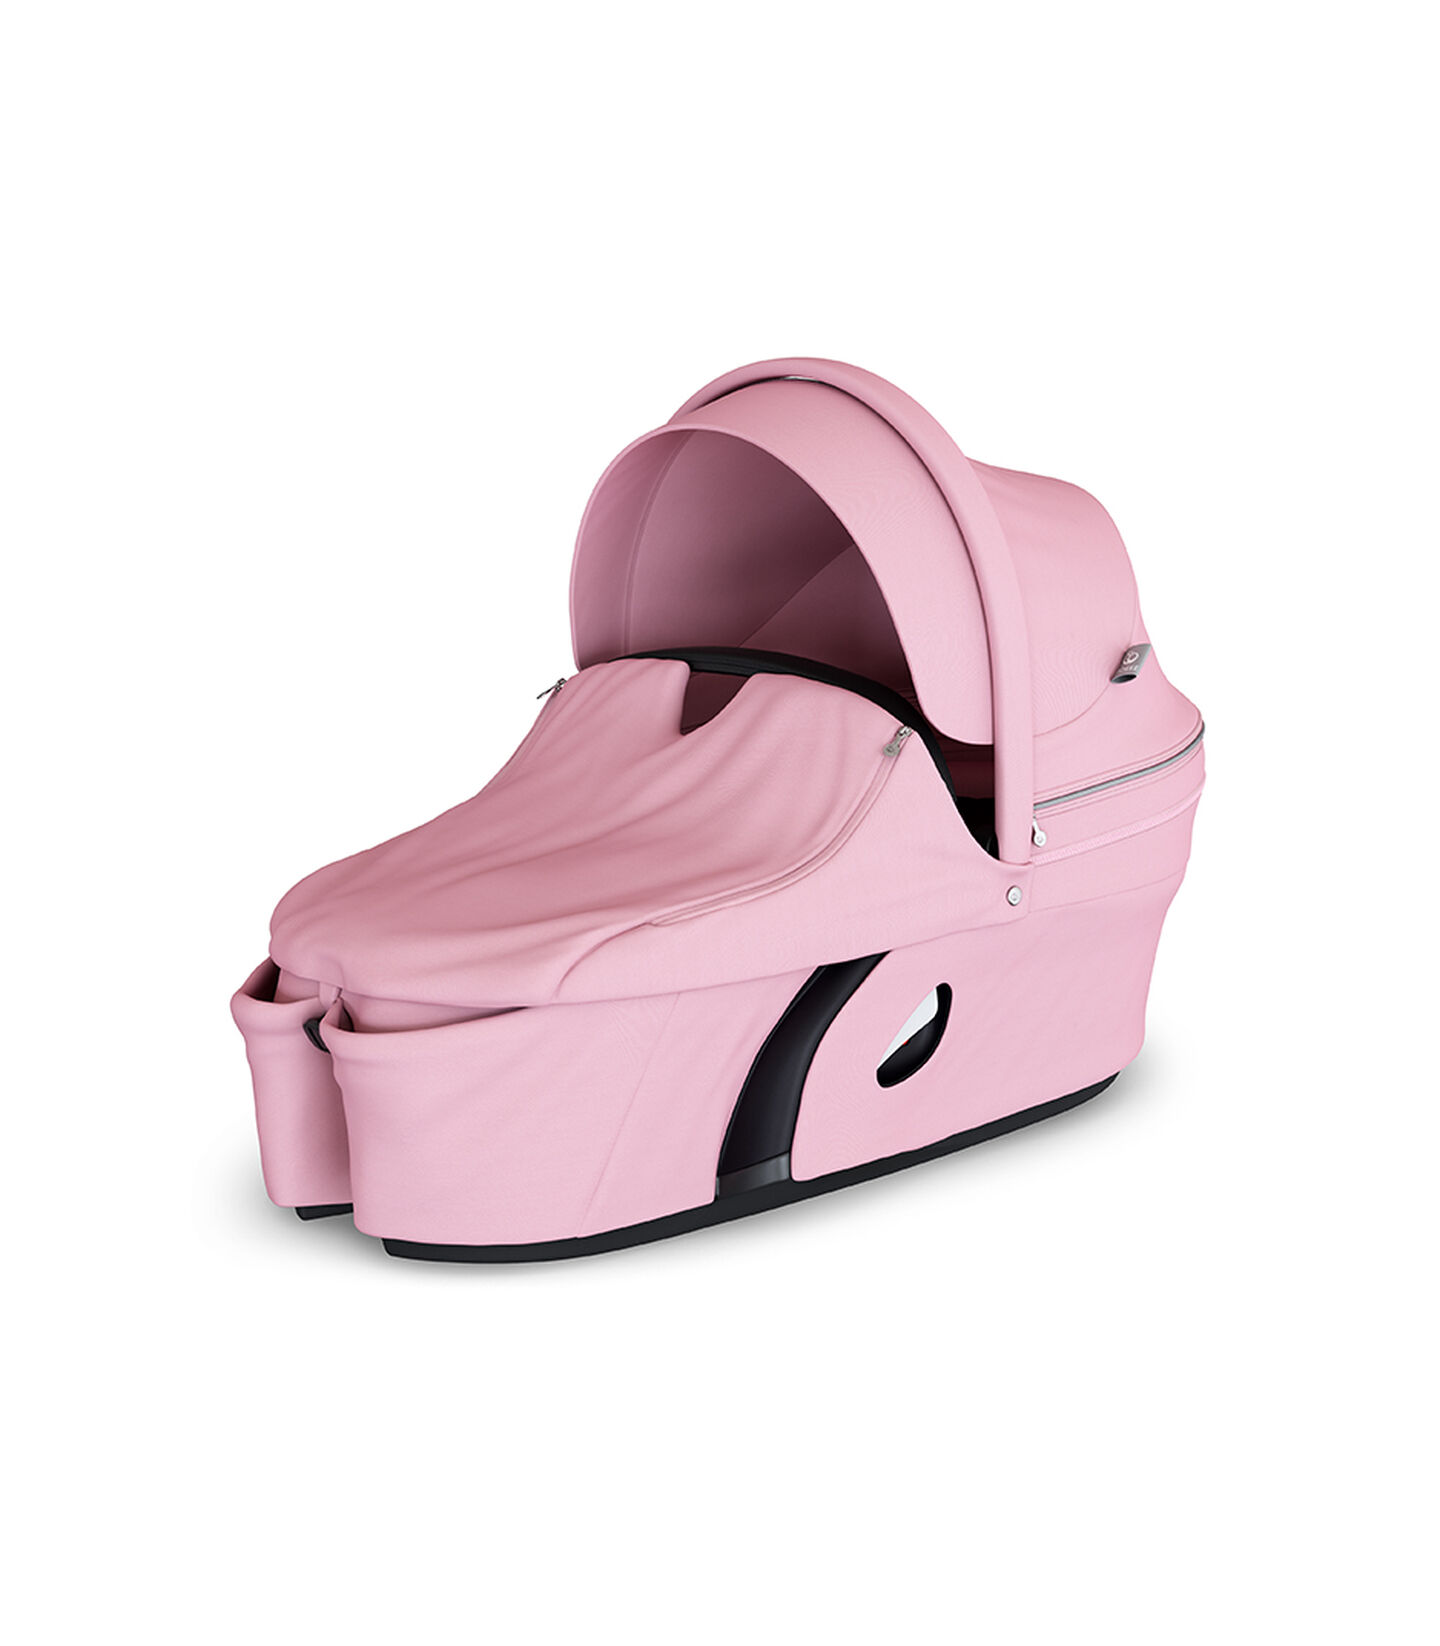 Stokke® Xplory® Carry Cot Complete Lotus Pink, Rosa Fiore di Loto, mainview